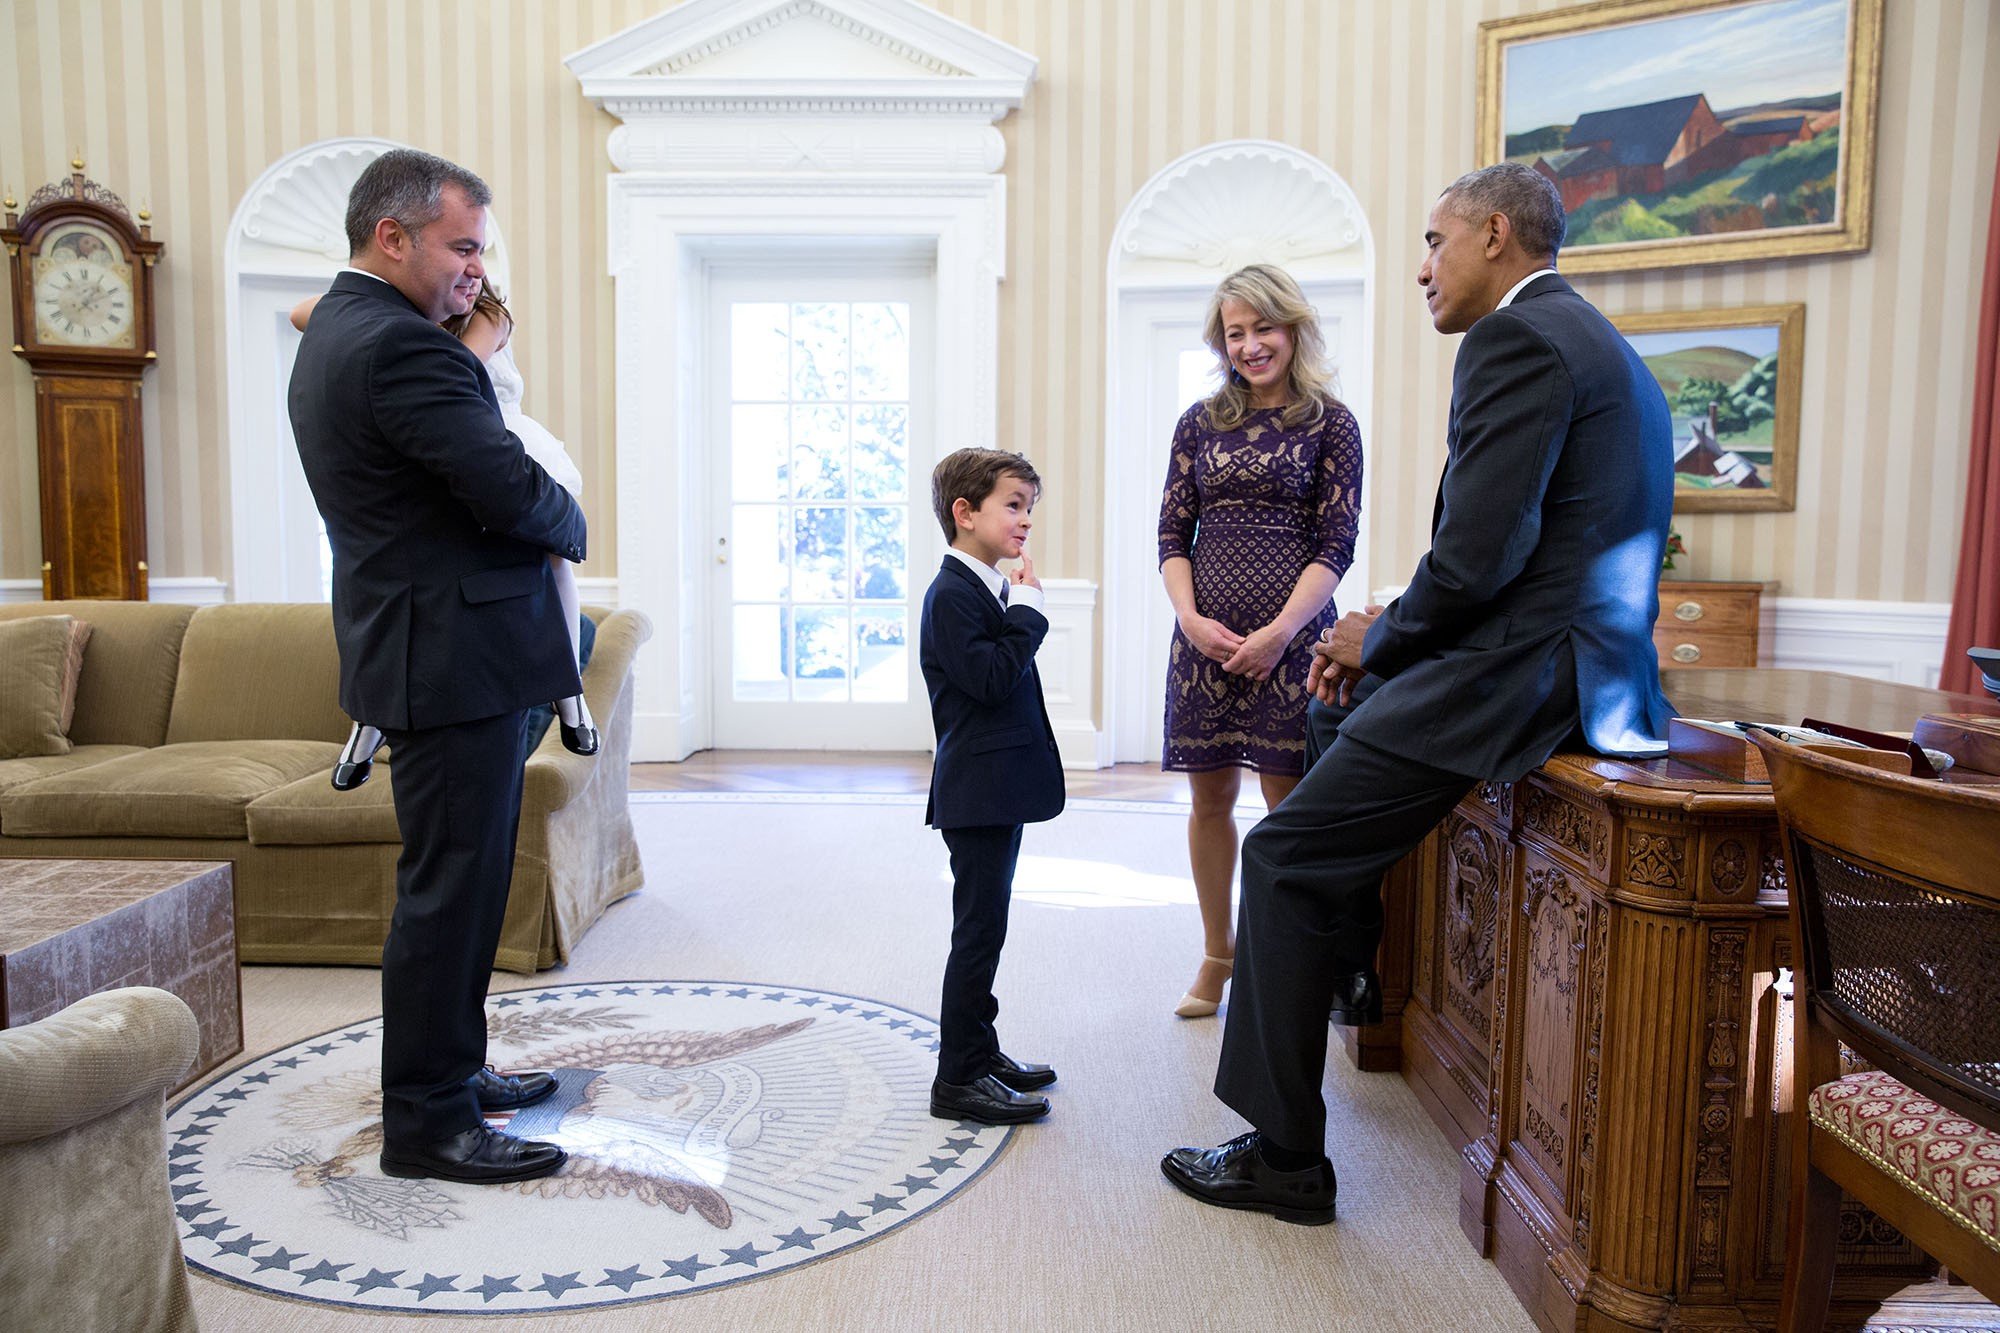 "Nov. 10, 2016 ""A good respite from the day after the election was the visit of Alex Myteberi. The six-year-old boy from New York had written a letter to President Obama after seeing a heart-breaking photograph of Syrian refugee Omran Daqneesh sitting silently in an ambulance, covered in blood and dust, after an air strike on Aleppo. In his letter, Alex wrote to the President: 'Can you please go get him and bring him to my home. We'll be waiting for you guys with flags, flowers, and balloons. We will give him a family and he will be our brother. The President was so touched by the letter that he read excerpts from it at the United Nations in September. Alex and his family were invited to the Oval Office so the President could tell him in person how much the letter had meant to him."" (Official White House Photo by Pete Souza)"